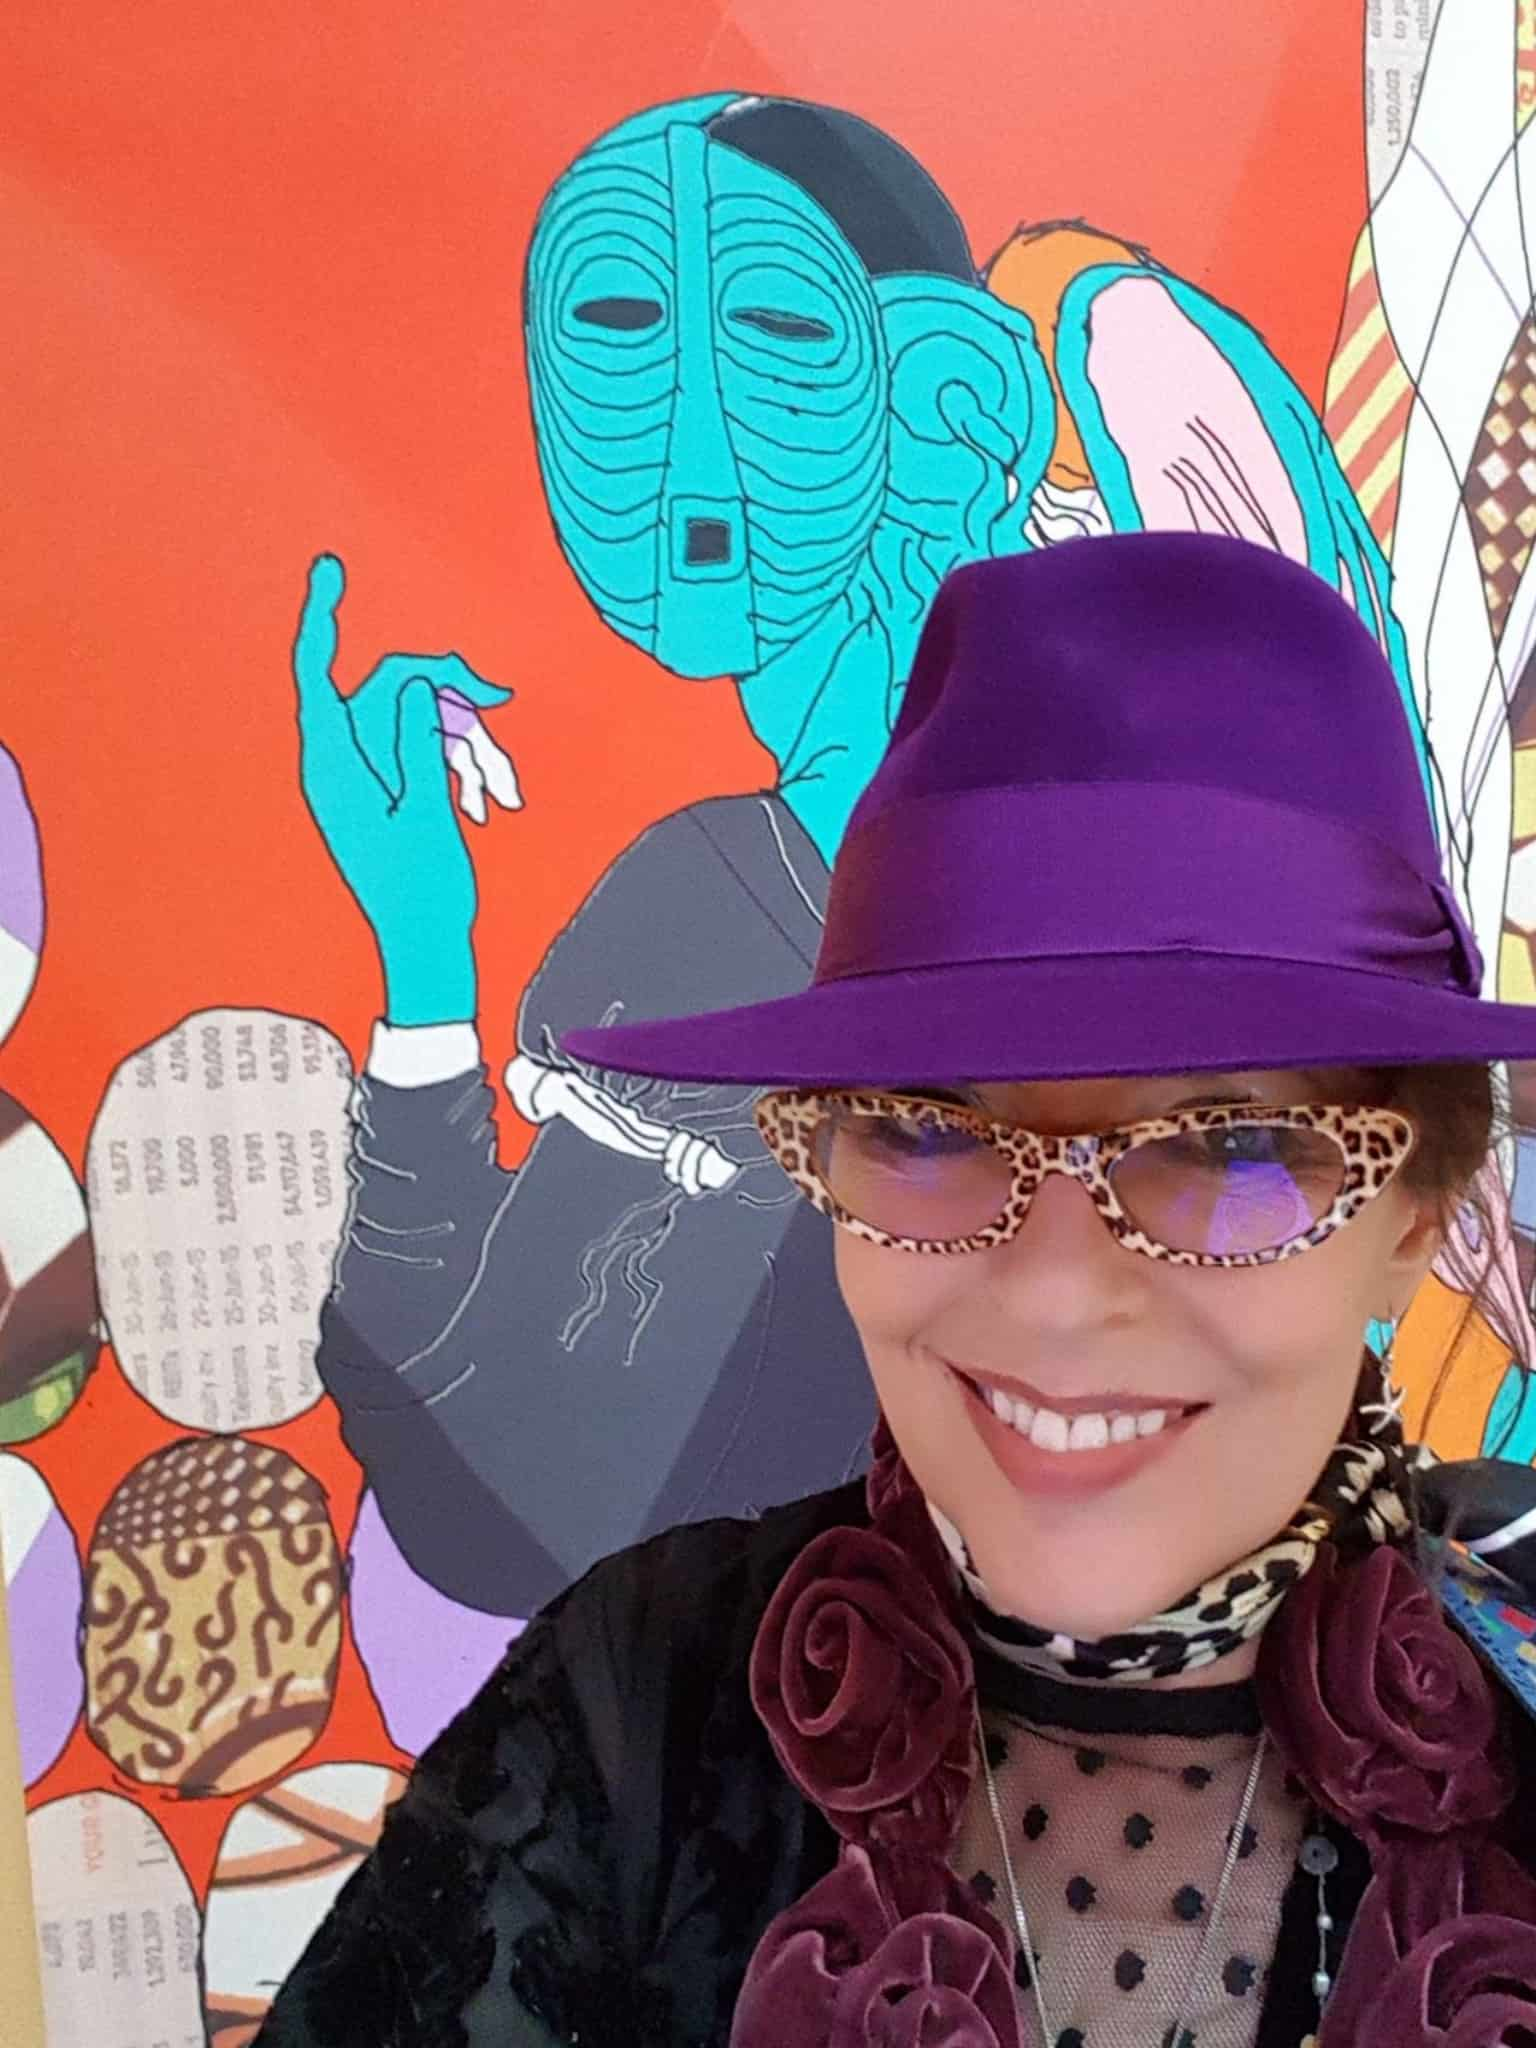 Luisa Calvo – traditional and digital caricaturist working at the Royal Academy of Arts